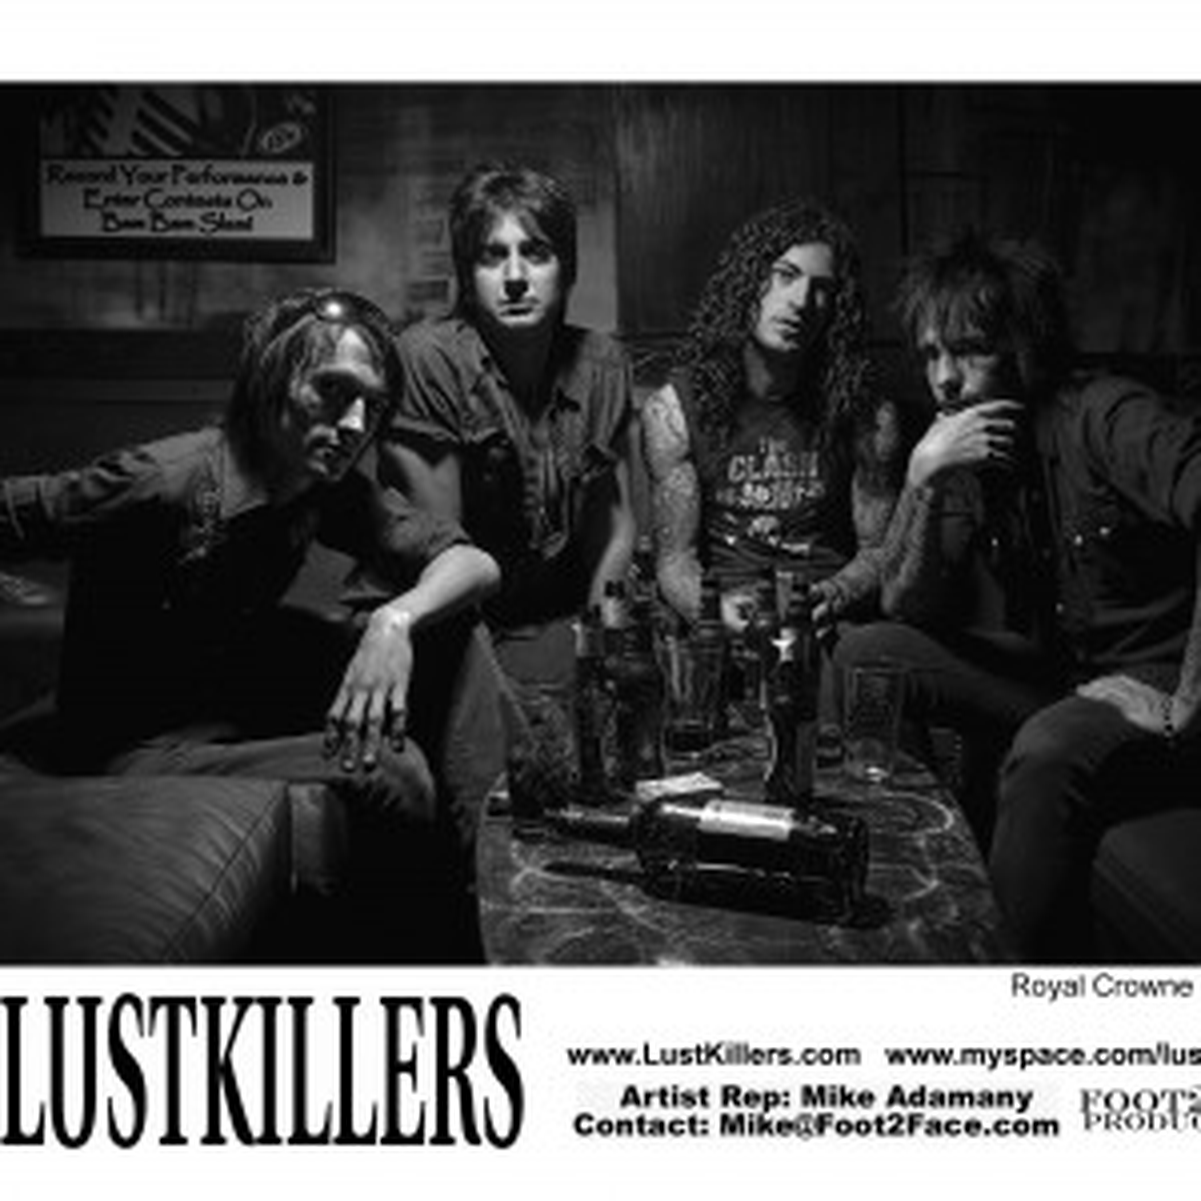 The LustKillers / Foot2Face Productions